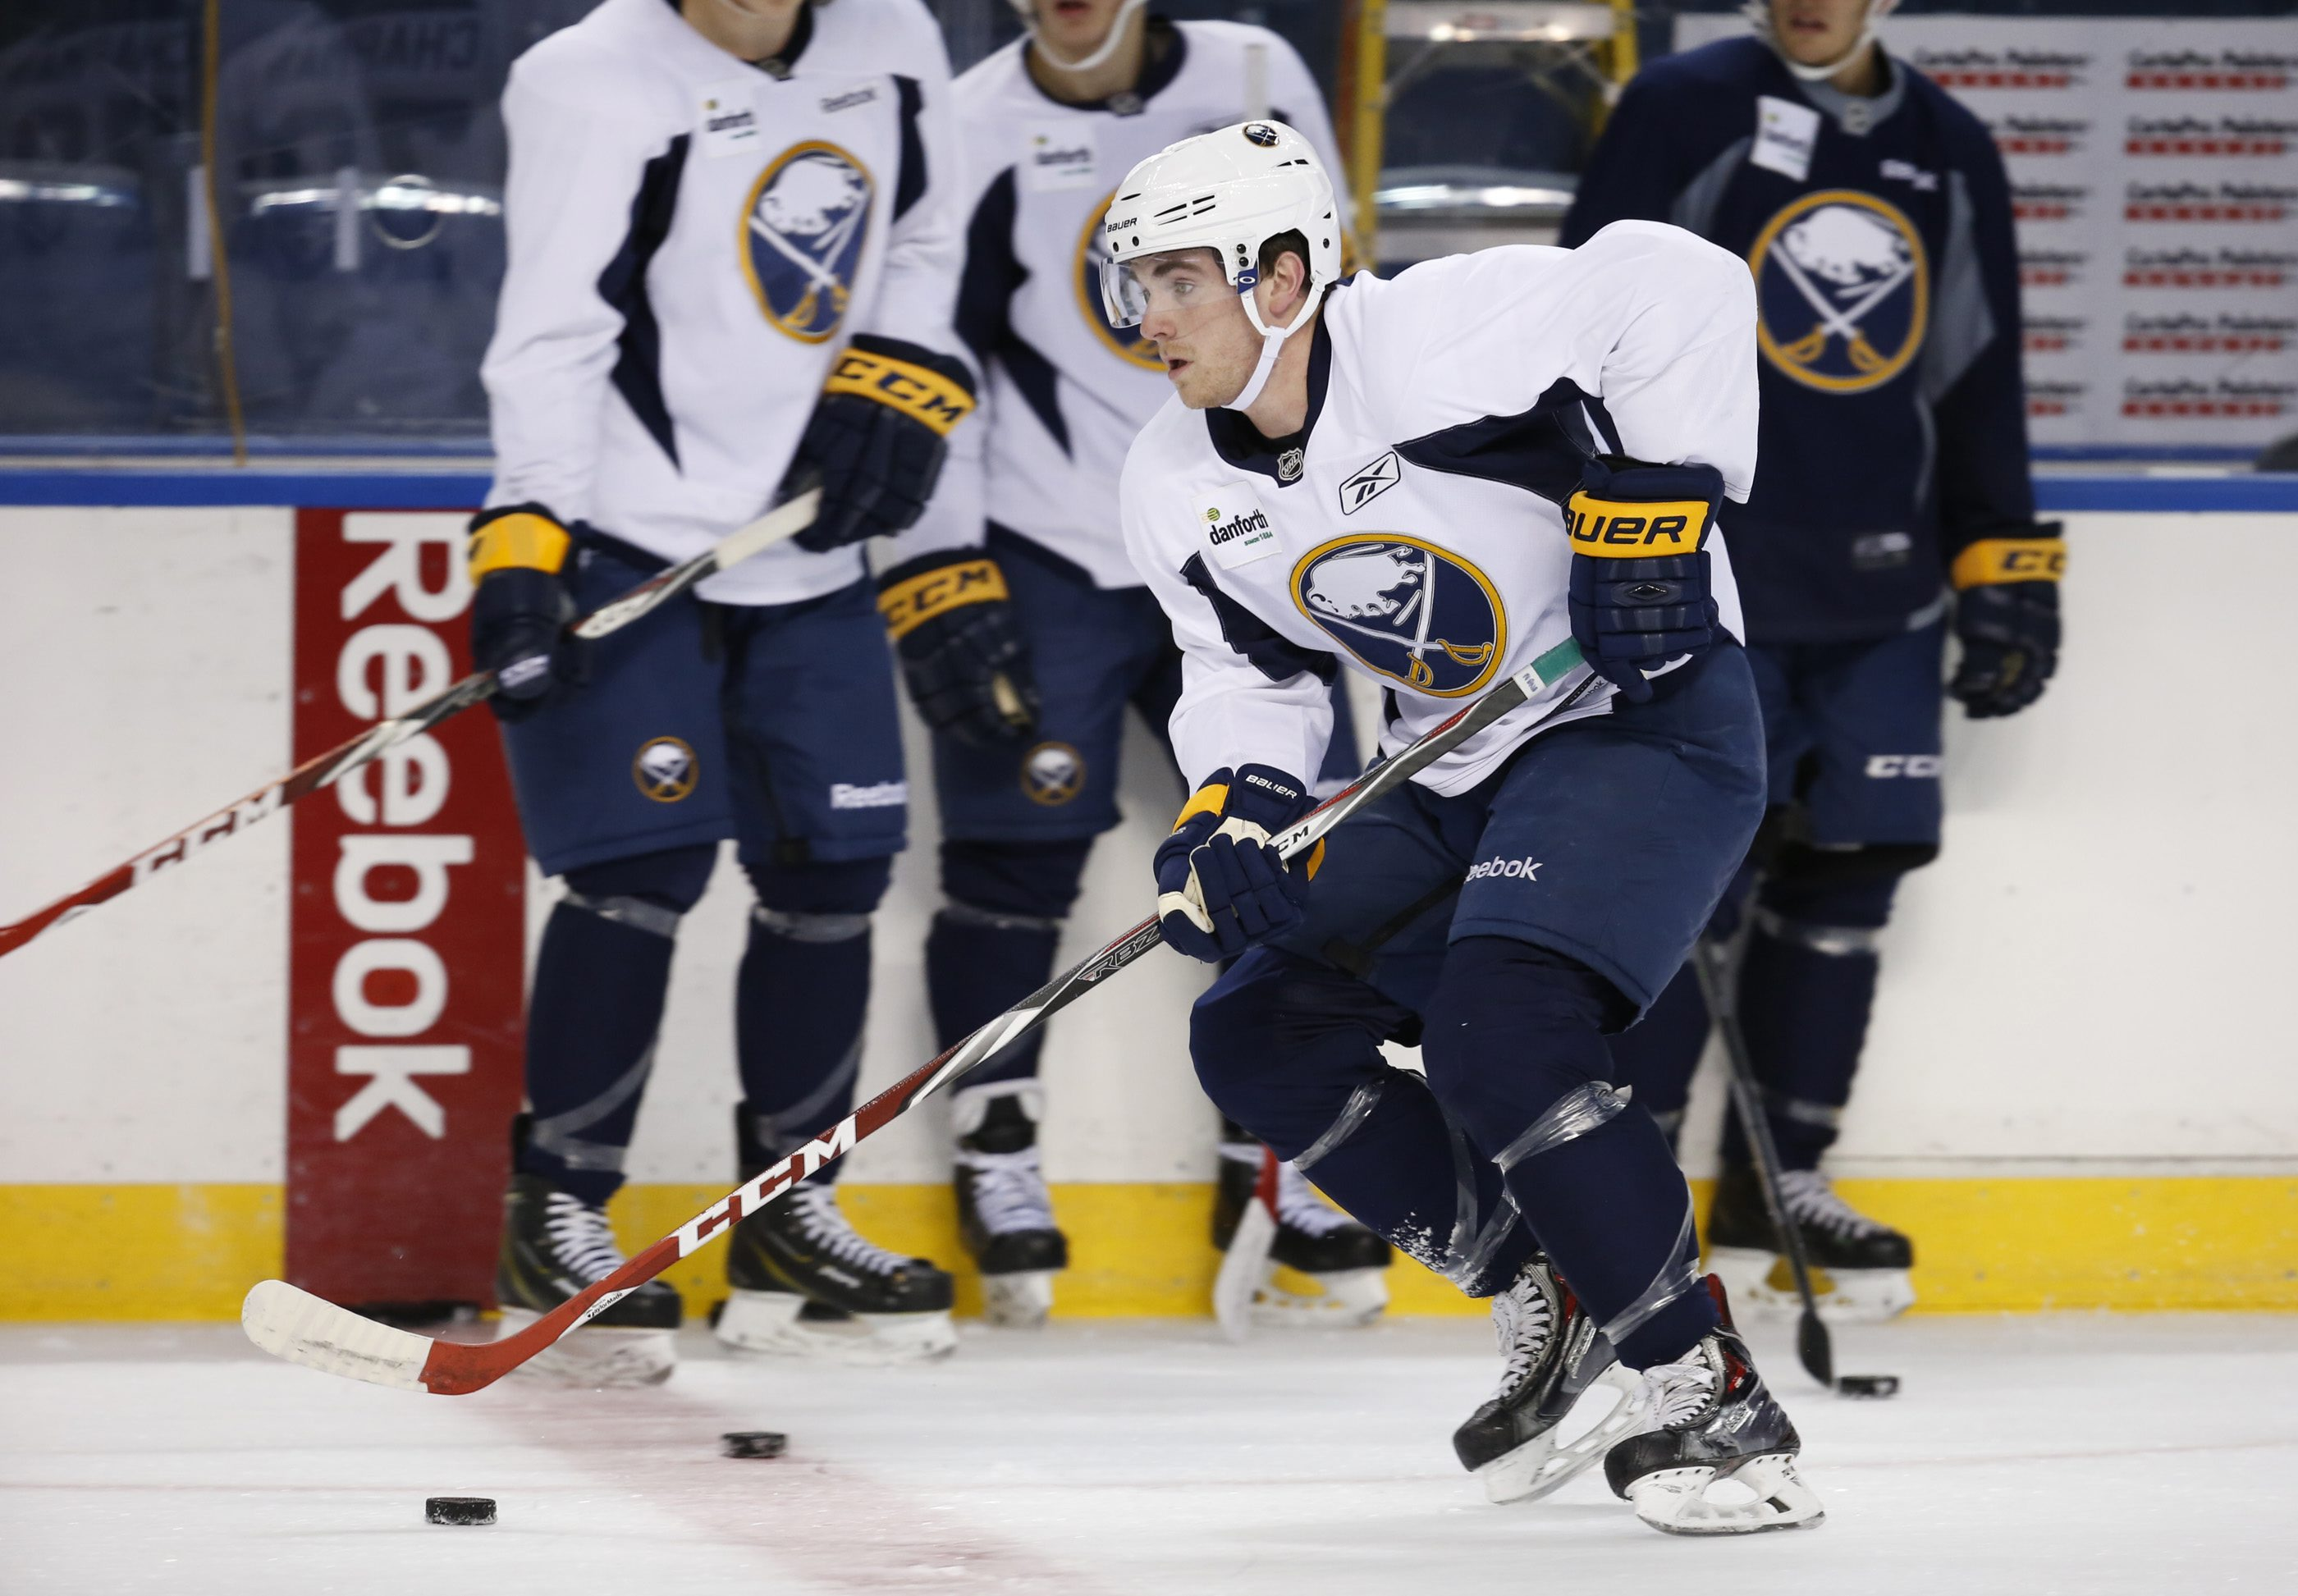 Anthony Florentino, skating at Sabres development camp, scored the first goal in Providence's win over Boston University in the NCAA championship game.